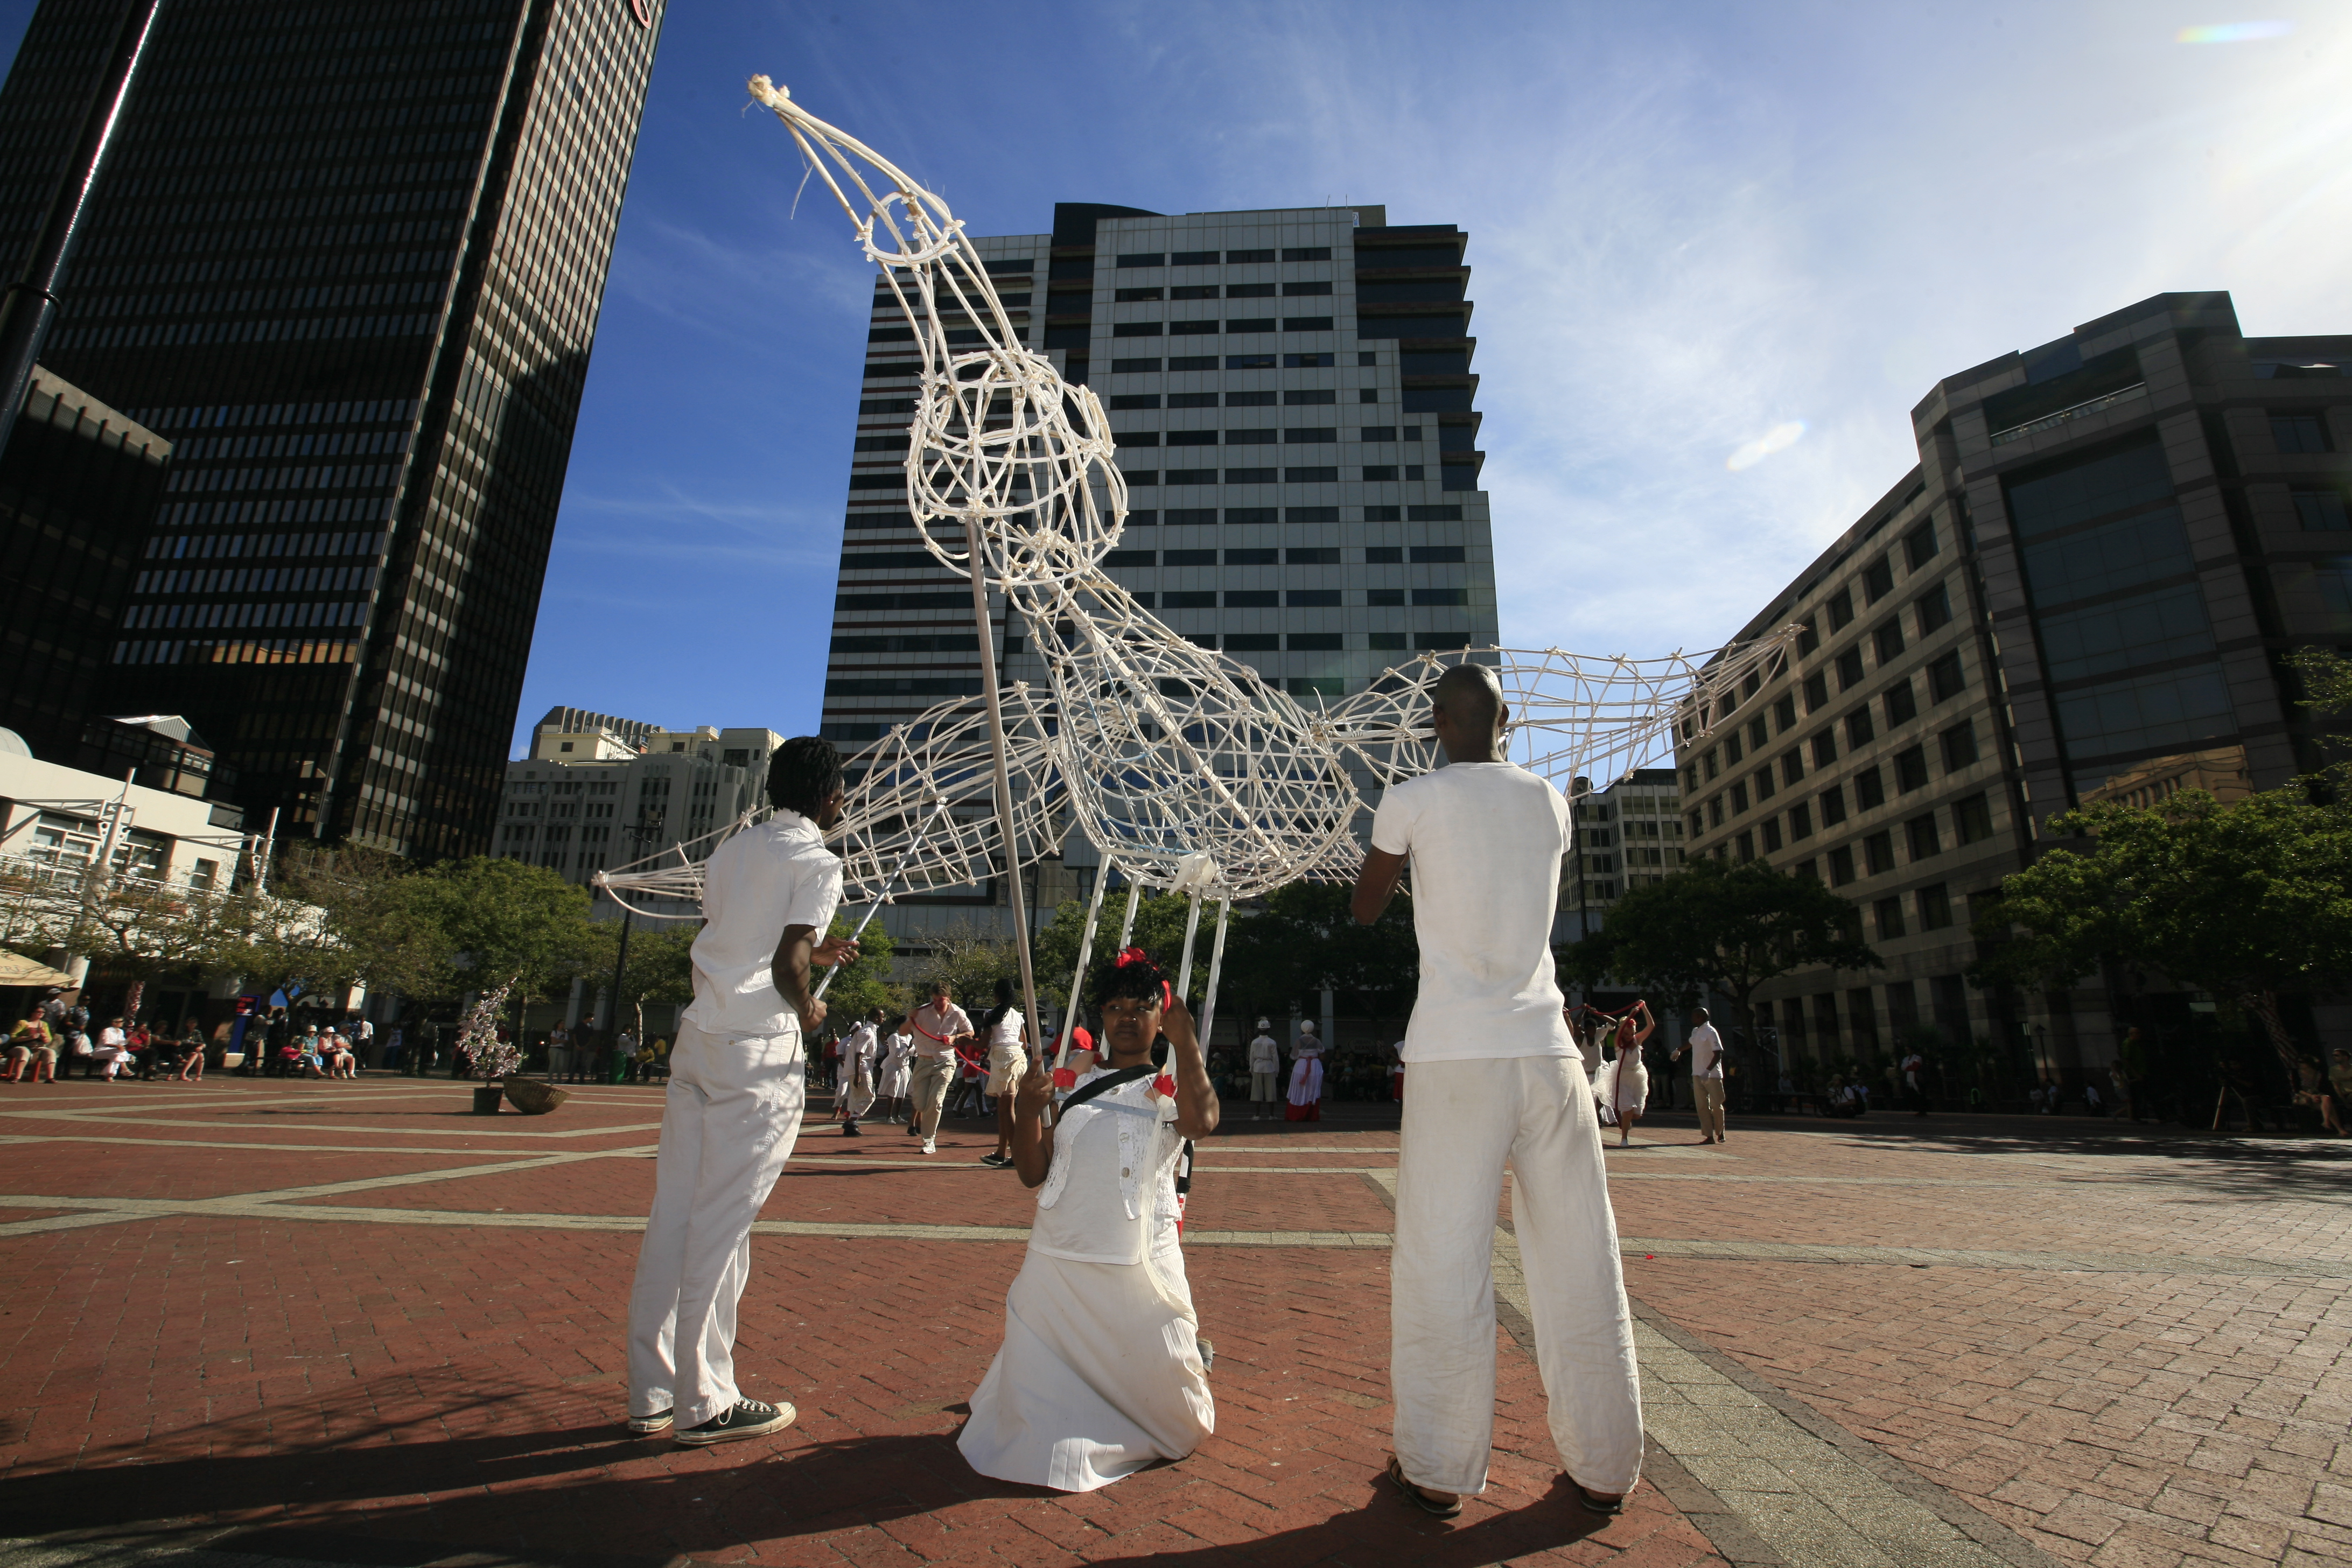 CAPE TOWN'S NEW ARTS POLICY: WHAT'S THE VERDICT?